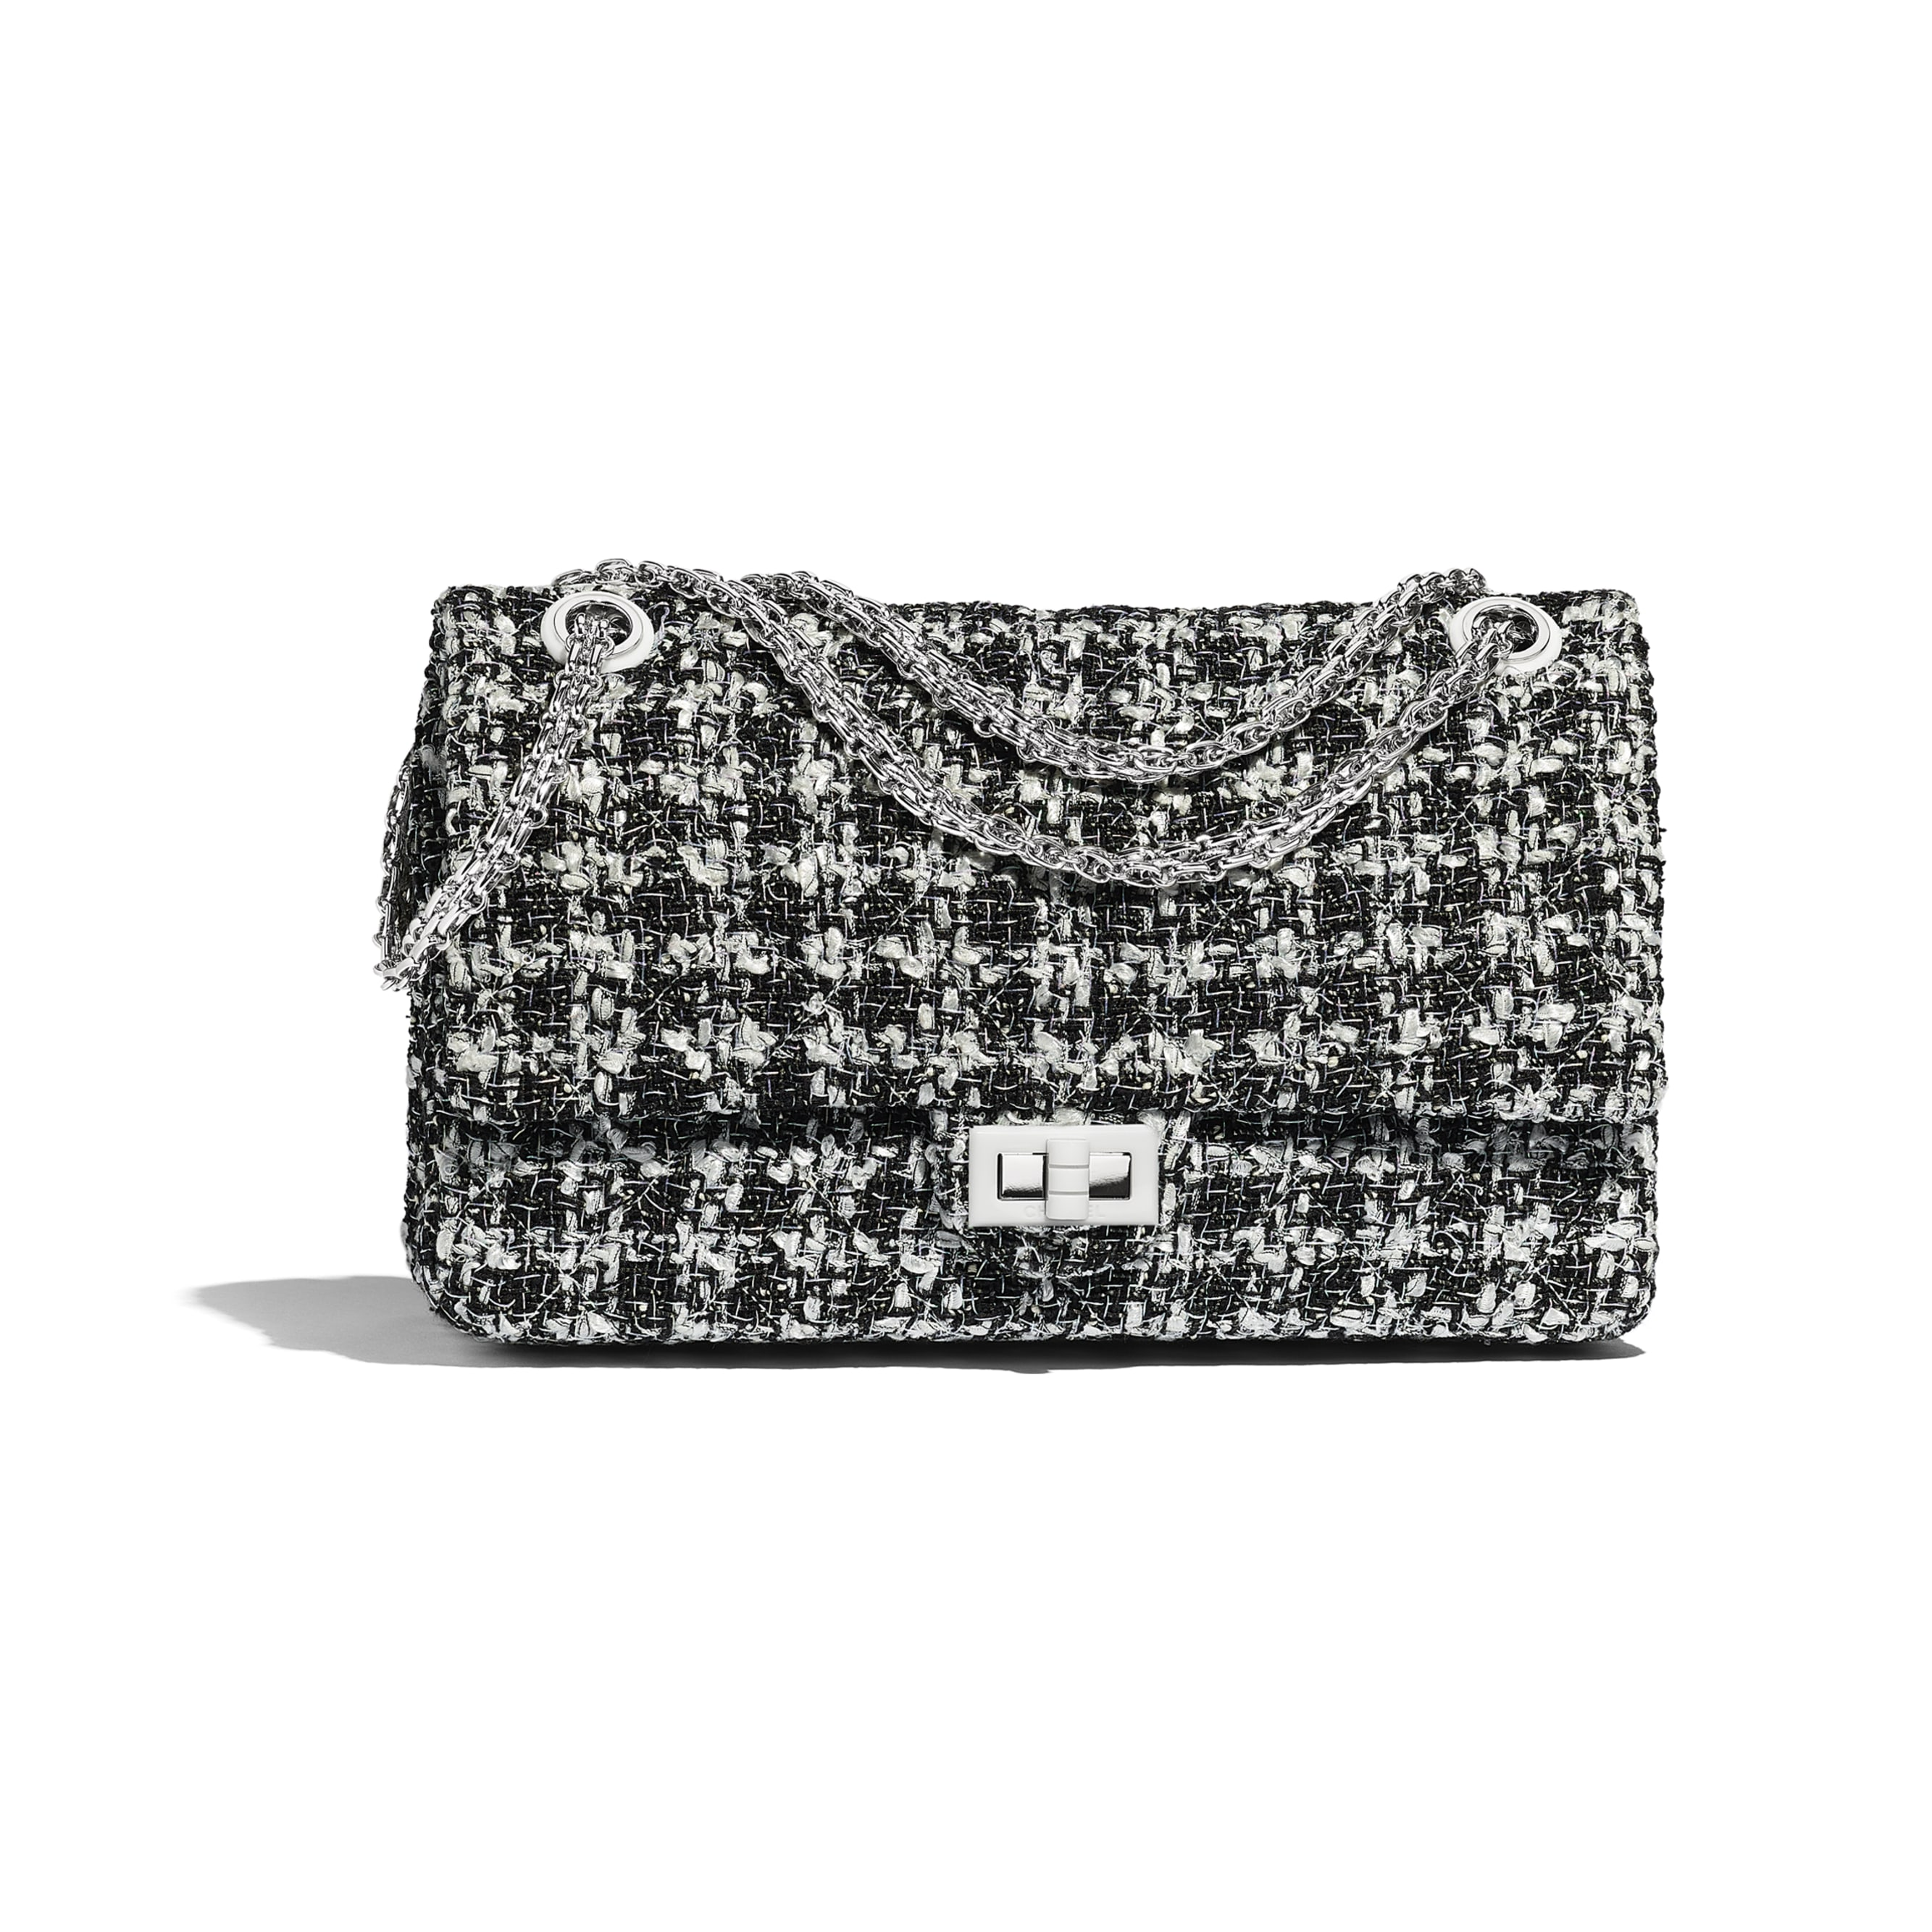 3f1dc694c002 ... Large 2.55 Handbag - Black   White - Tweed